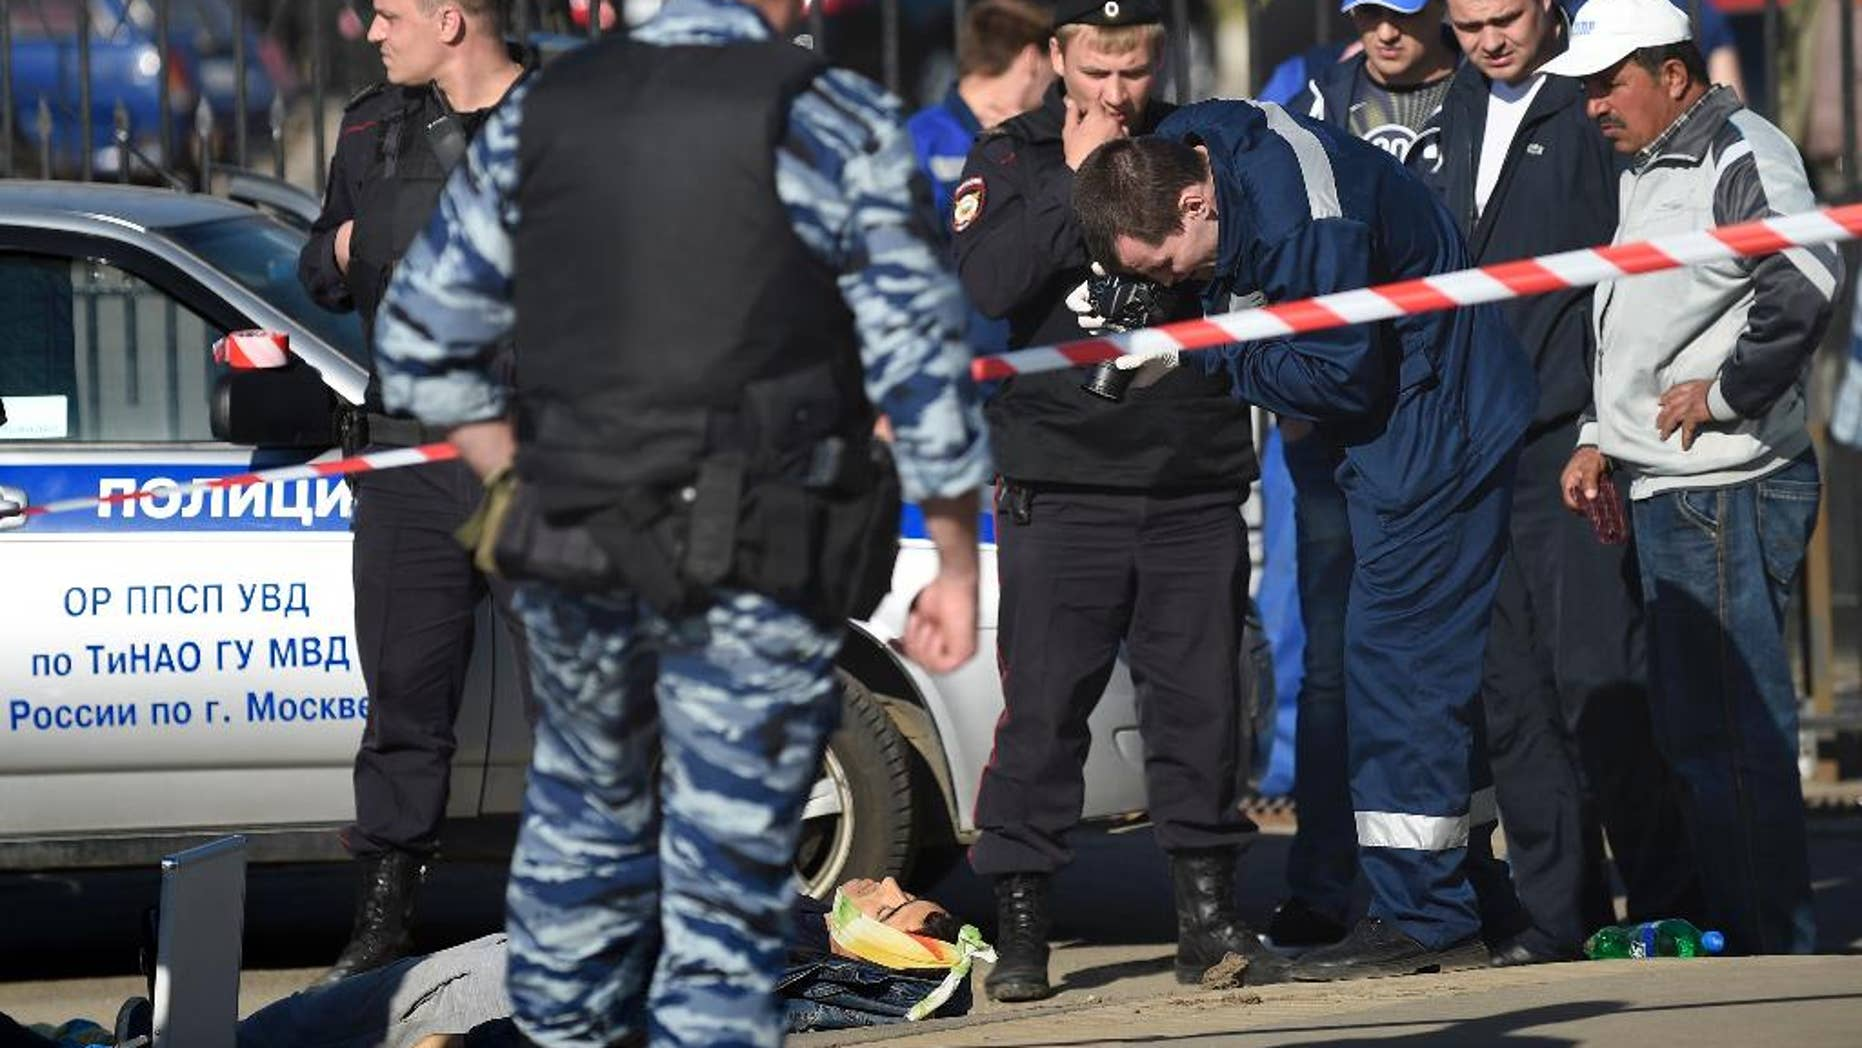 Police investigators work on the site of a brawl at the Khovanskoye cemetery in in Moscow, Russia, Saturday, May 14, 2016. Moscow police say a brawl at a cemetery involving up to 200 people has left two people dead and 10 wounded. Russian news reports cited police as saying the brawl was believed to have been about control over providing burial services at the sprawling Khovanskoye cemetery in southwest Moscow. (AP Photo)